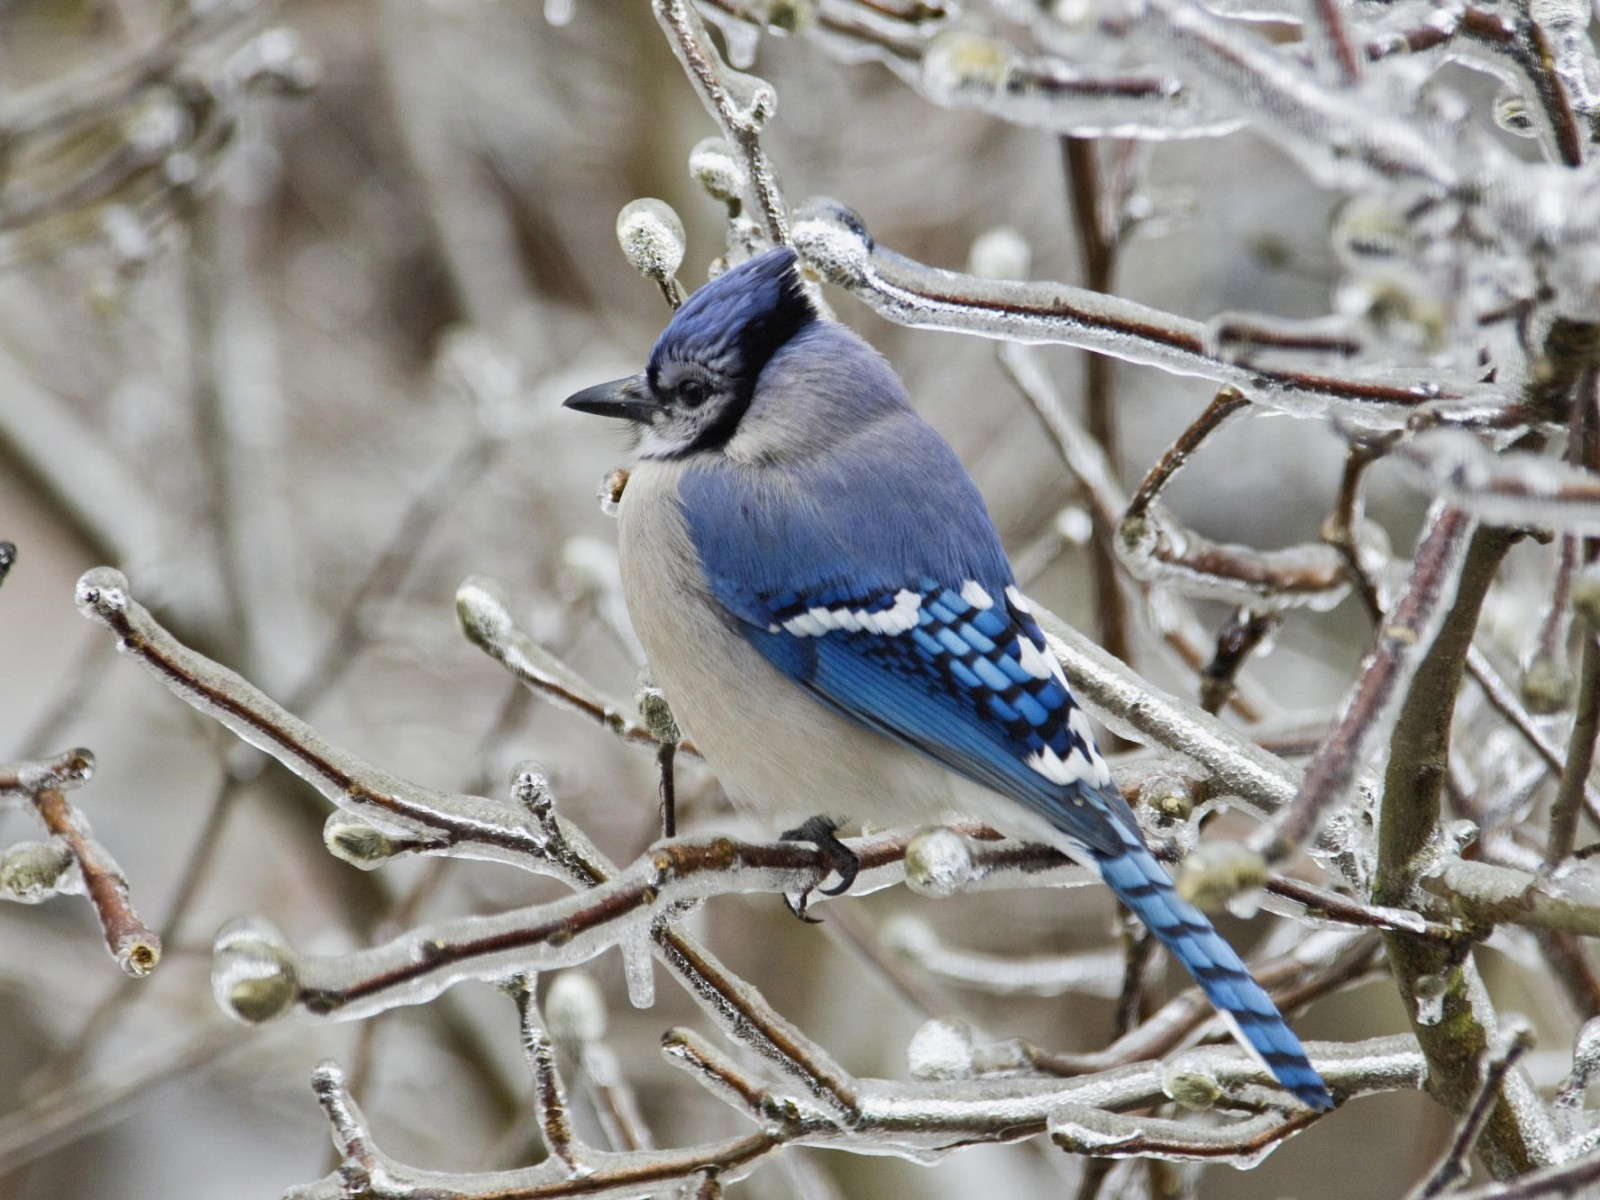 Download Wallpaper Girl Hd Wallpapers Catalogue Com Blue Jay Bird In 1600x1200